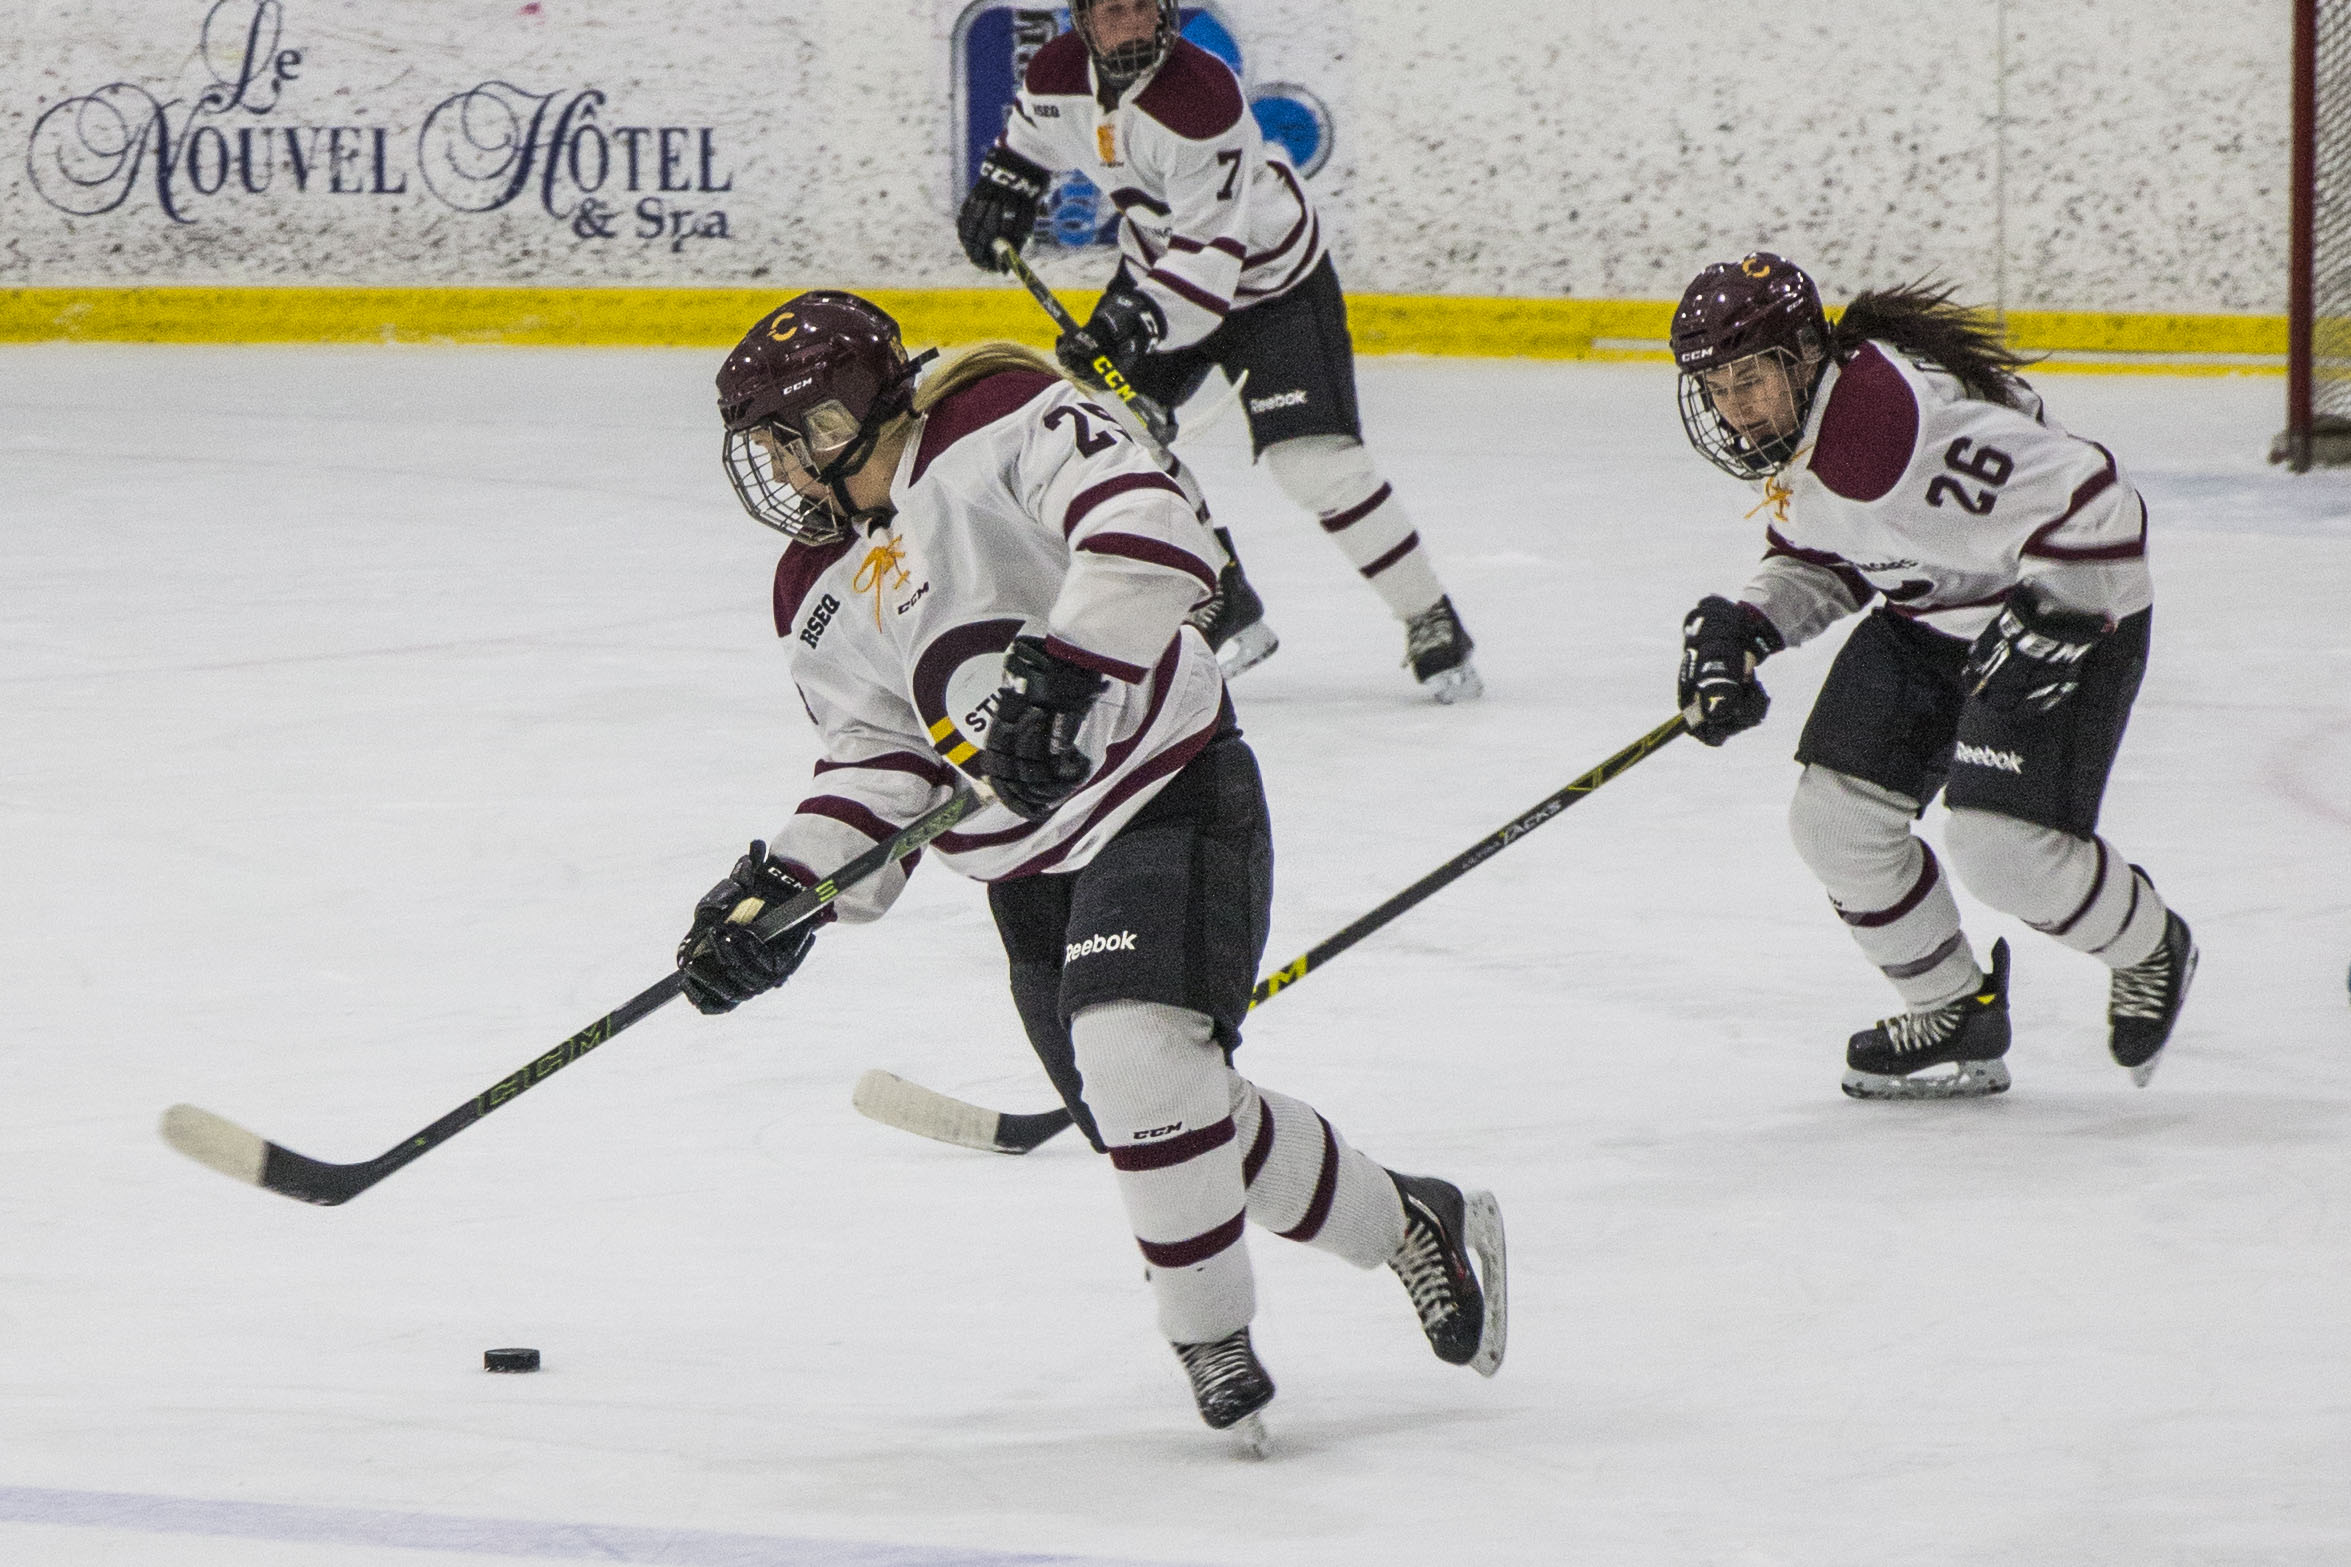 Forward Keriann Schofield receives the puck at her own blue line. Photo by Kelsey Litwin.